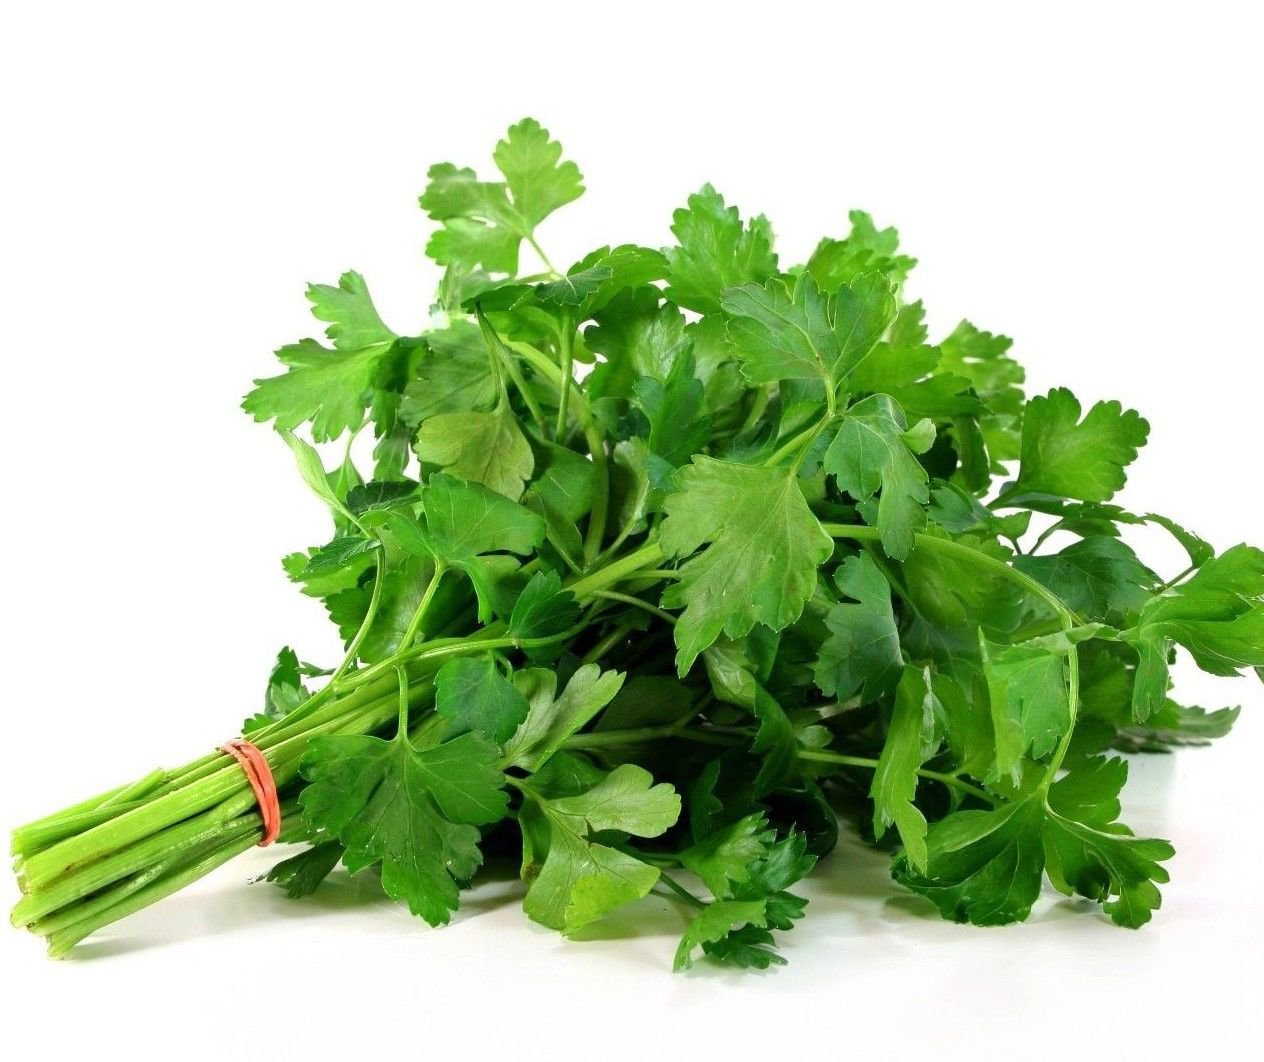 Plain Parsley Petroselinum crispum 1000 seeds * herb * spice * *SHIPPING FROM US* CombSH G34